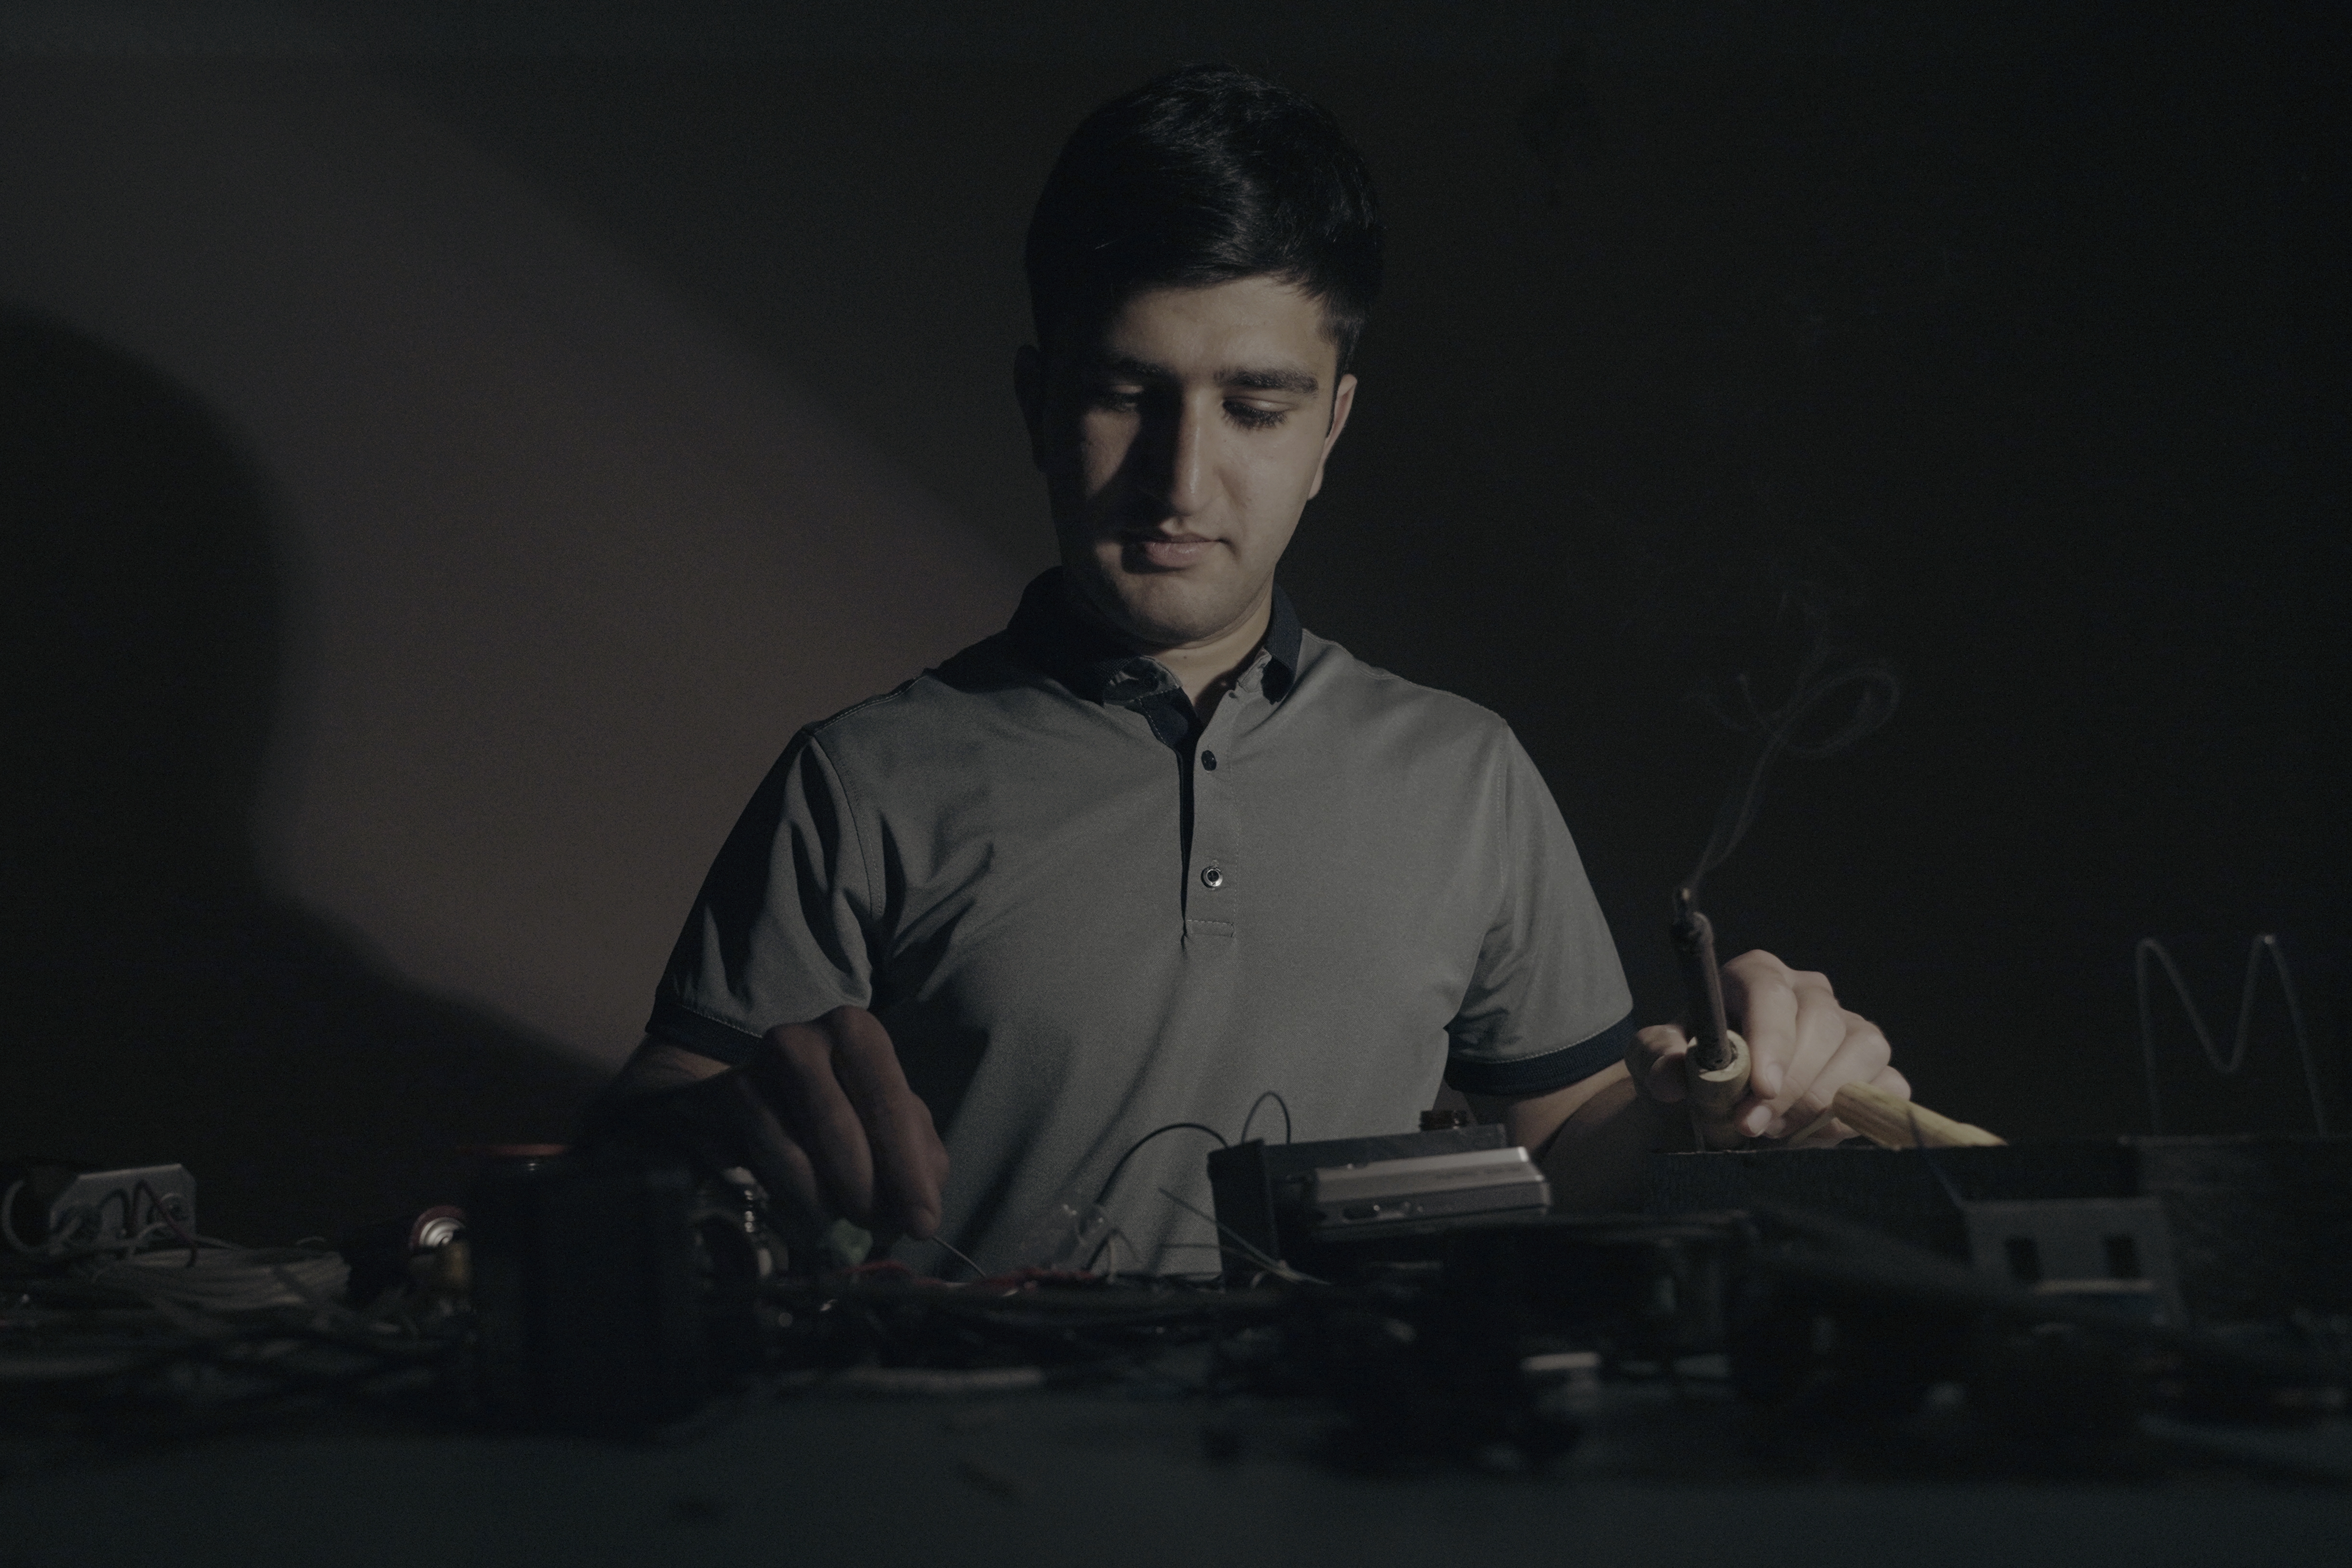 Mher says that while he cannot imagine his life without a computer, he hopes to use his skills to in ...